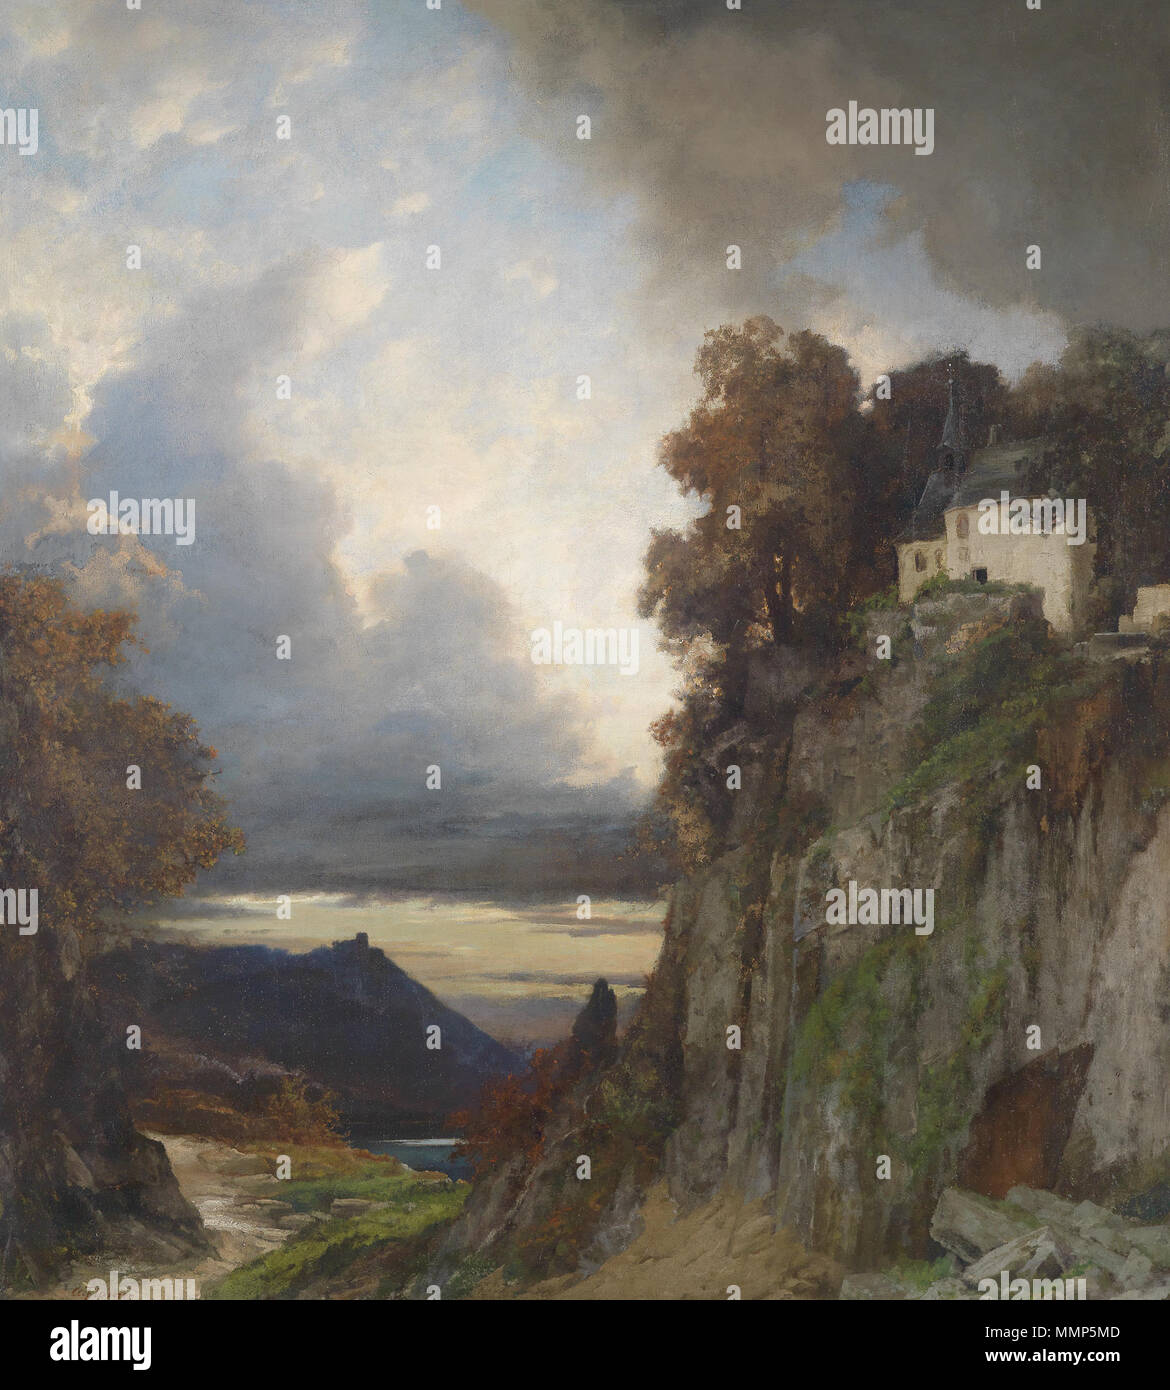 . German: Abendstimmung am Rhein (bei Koblenz)  . by 1906.   Albert Flamm  (1823–1906)     Alternative names a. flamm; professor a. flamm; albert flamm; Flamm; flamm albert  Description German painter  Date of birth/death 9 April 1823 28 March 1906  Location of birth/death Cologne Düsseldorf  Authority control  : Q878000 VIAF:?67220775 ULAN:?500007042 GND:?116588144 RKD:?28224 Albert Flamm Abendstimmung am Rhein (Koblenz) - Stock Image